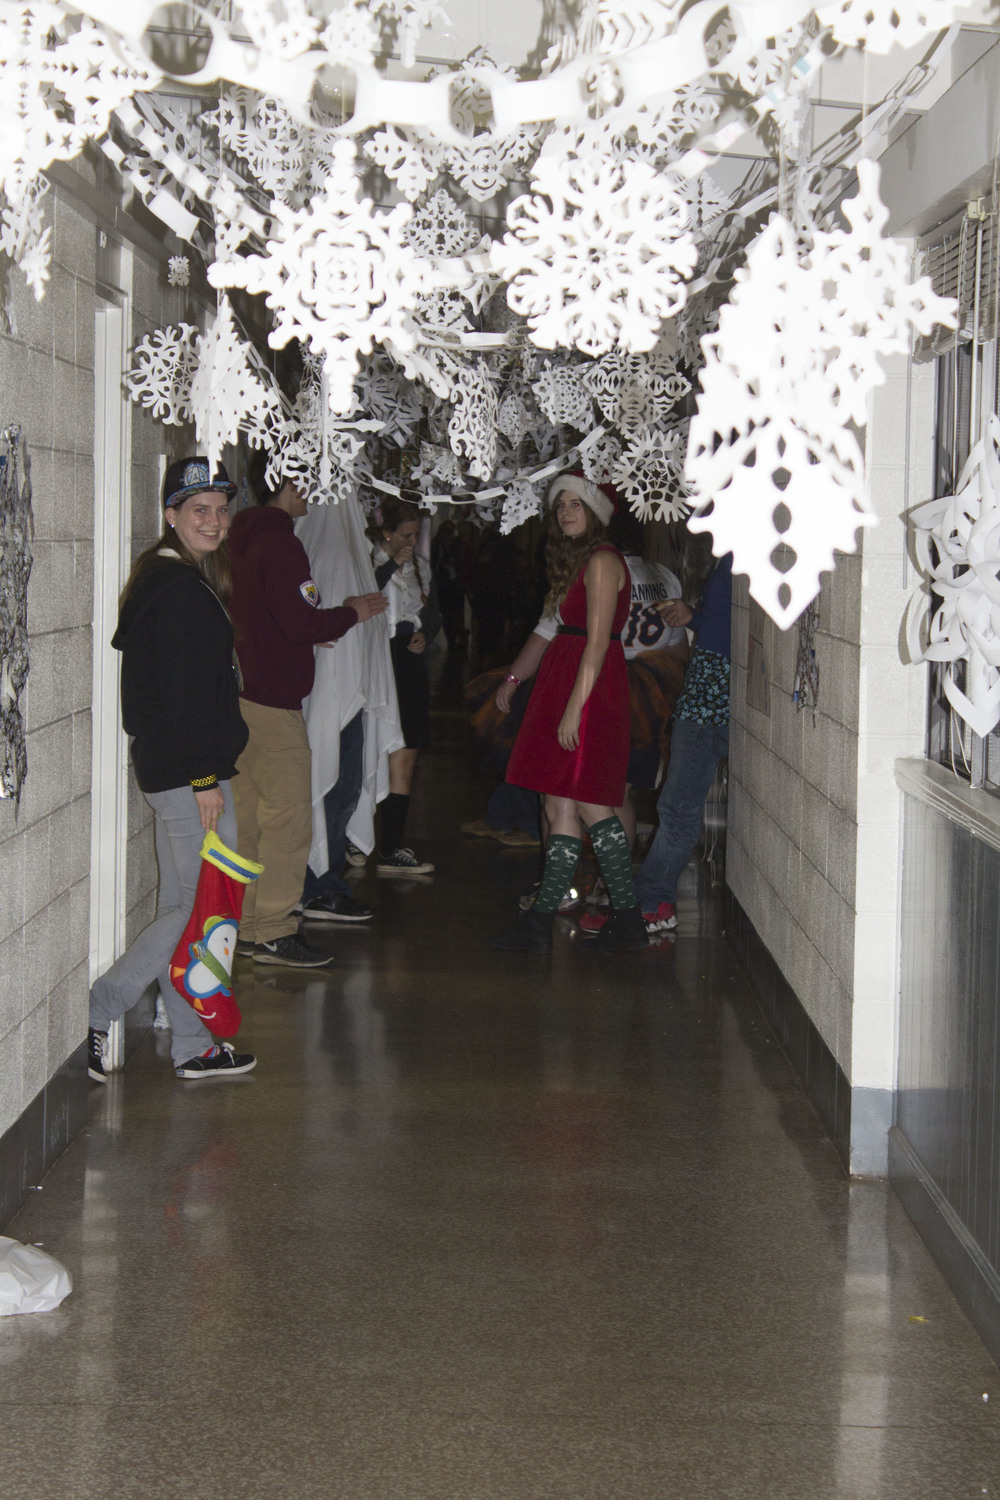 Upstairs Simpson rocked the Elf theme with their countless cut out snowflakes hanging from the ceiling.